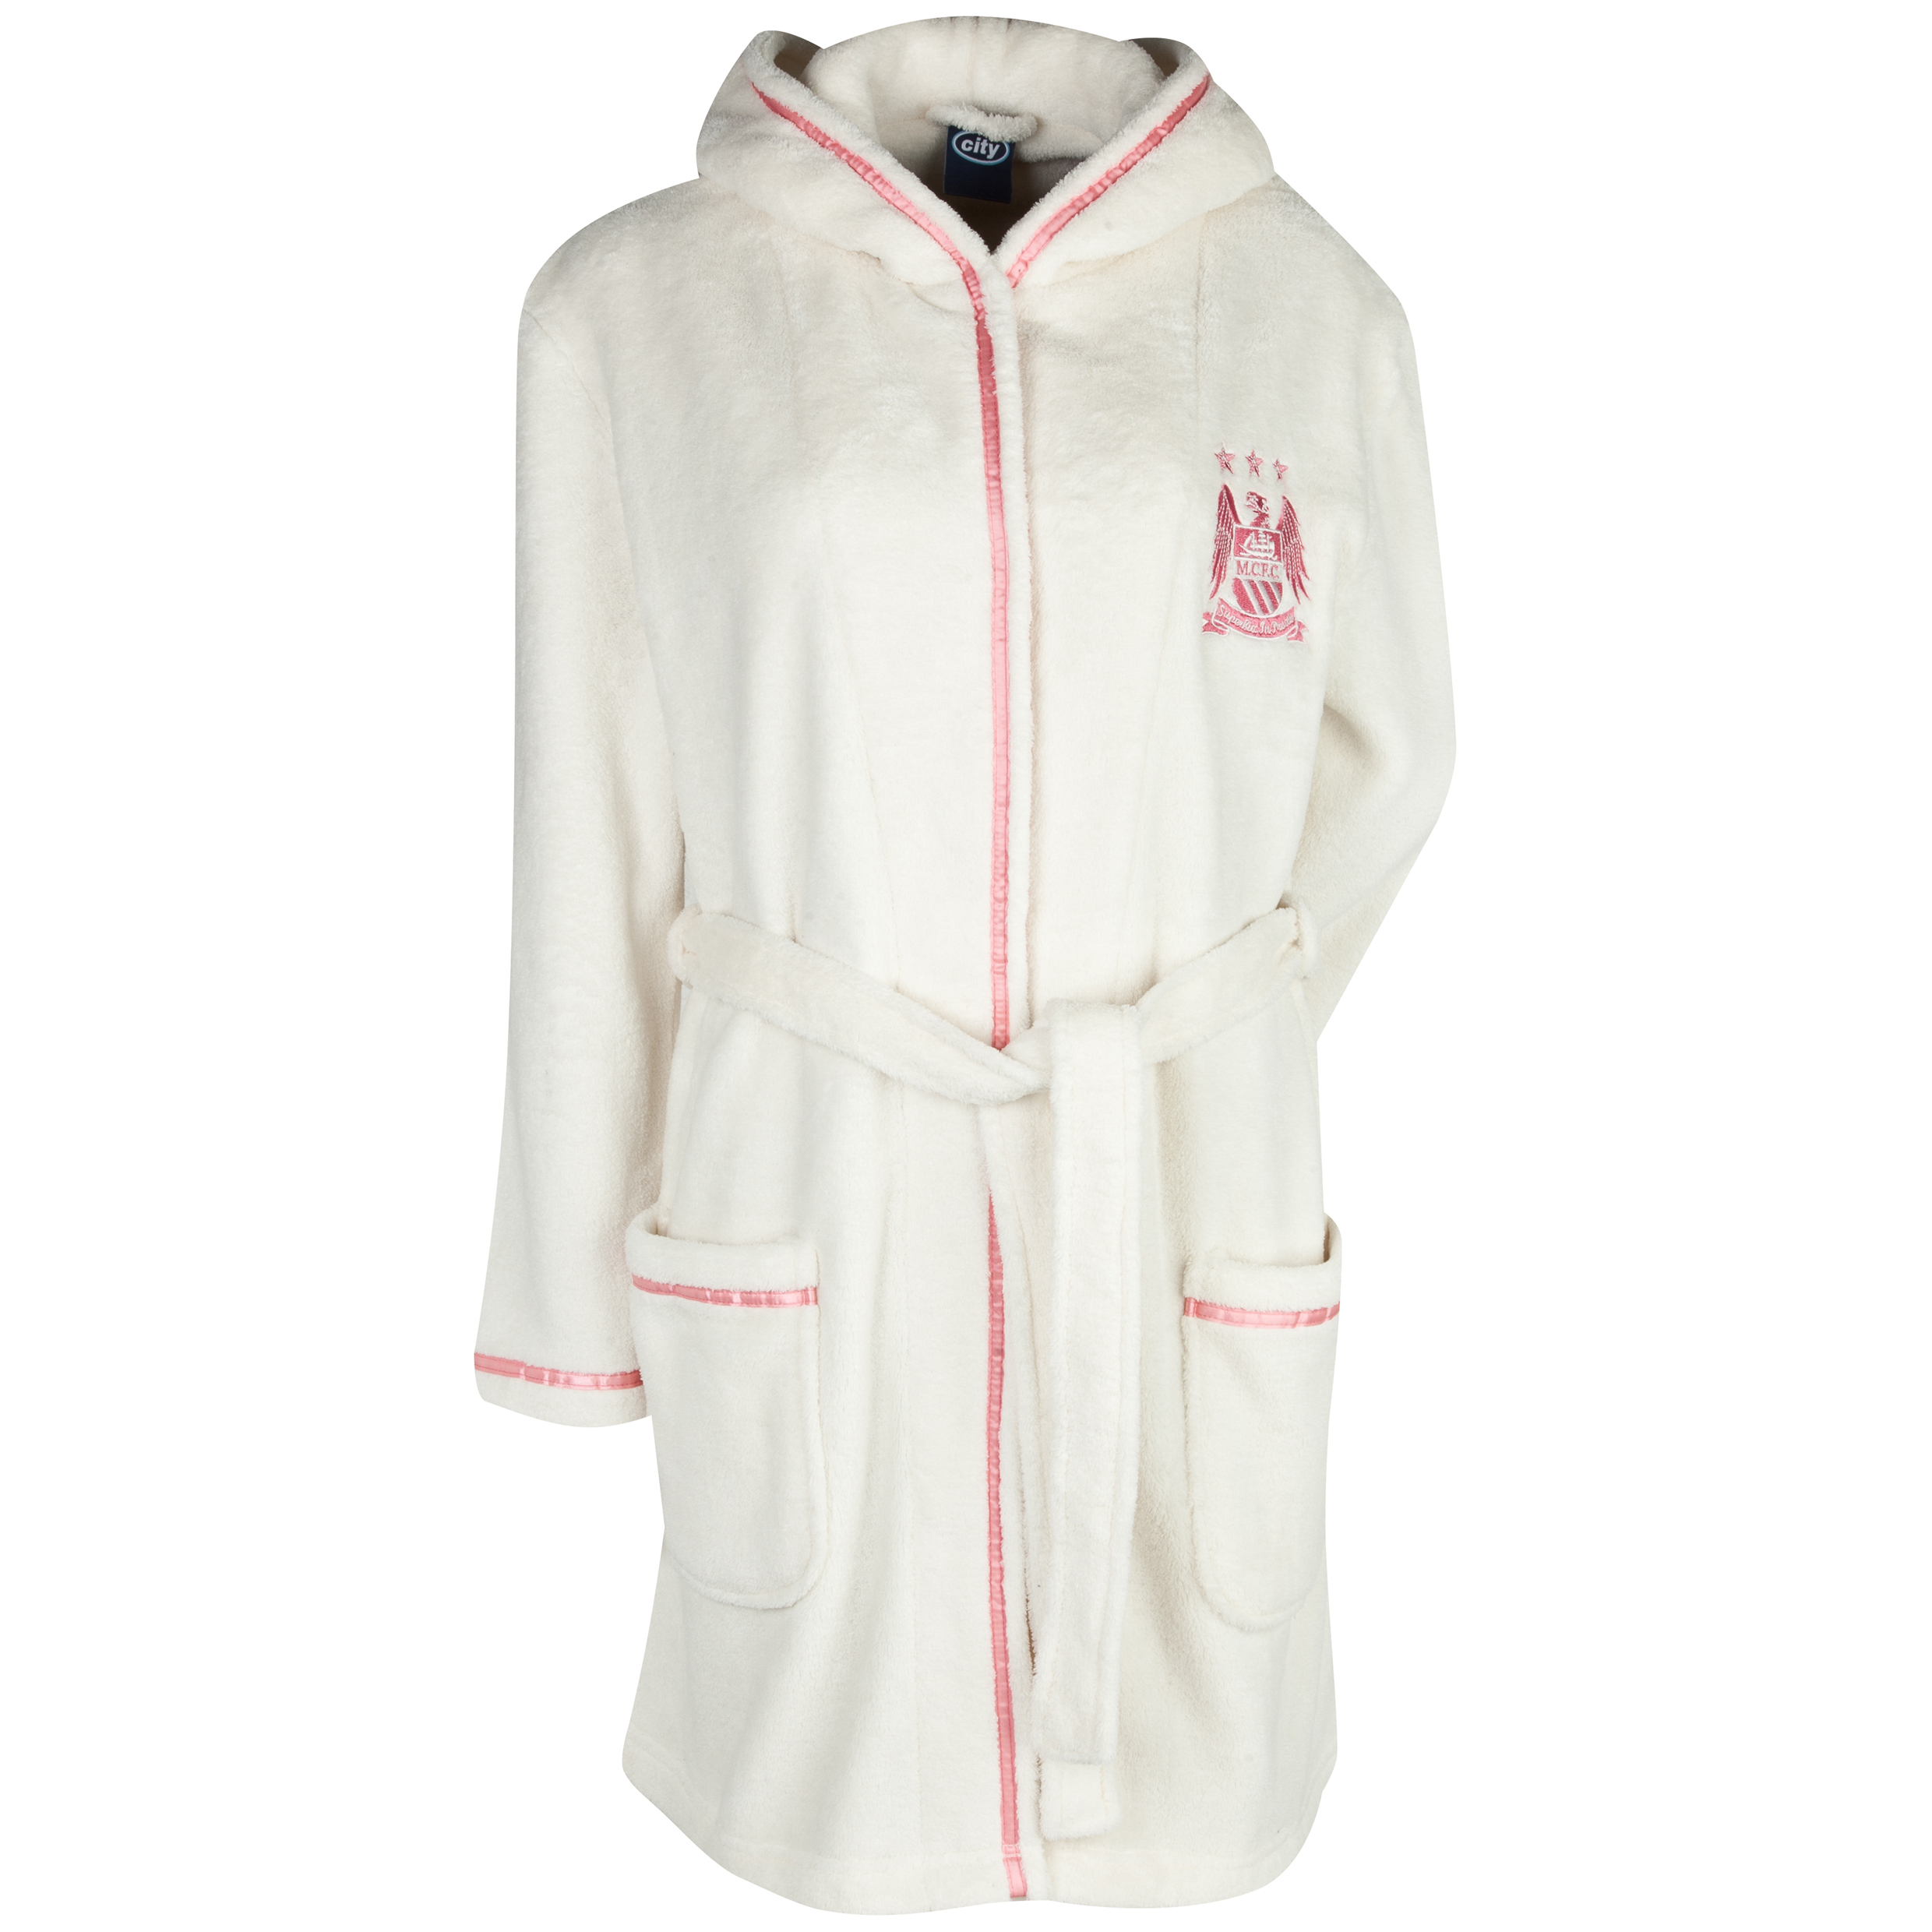 Manchester City Robe Womens Cream